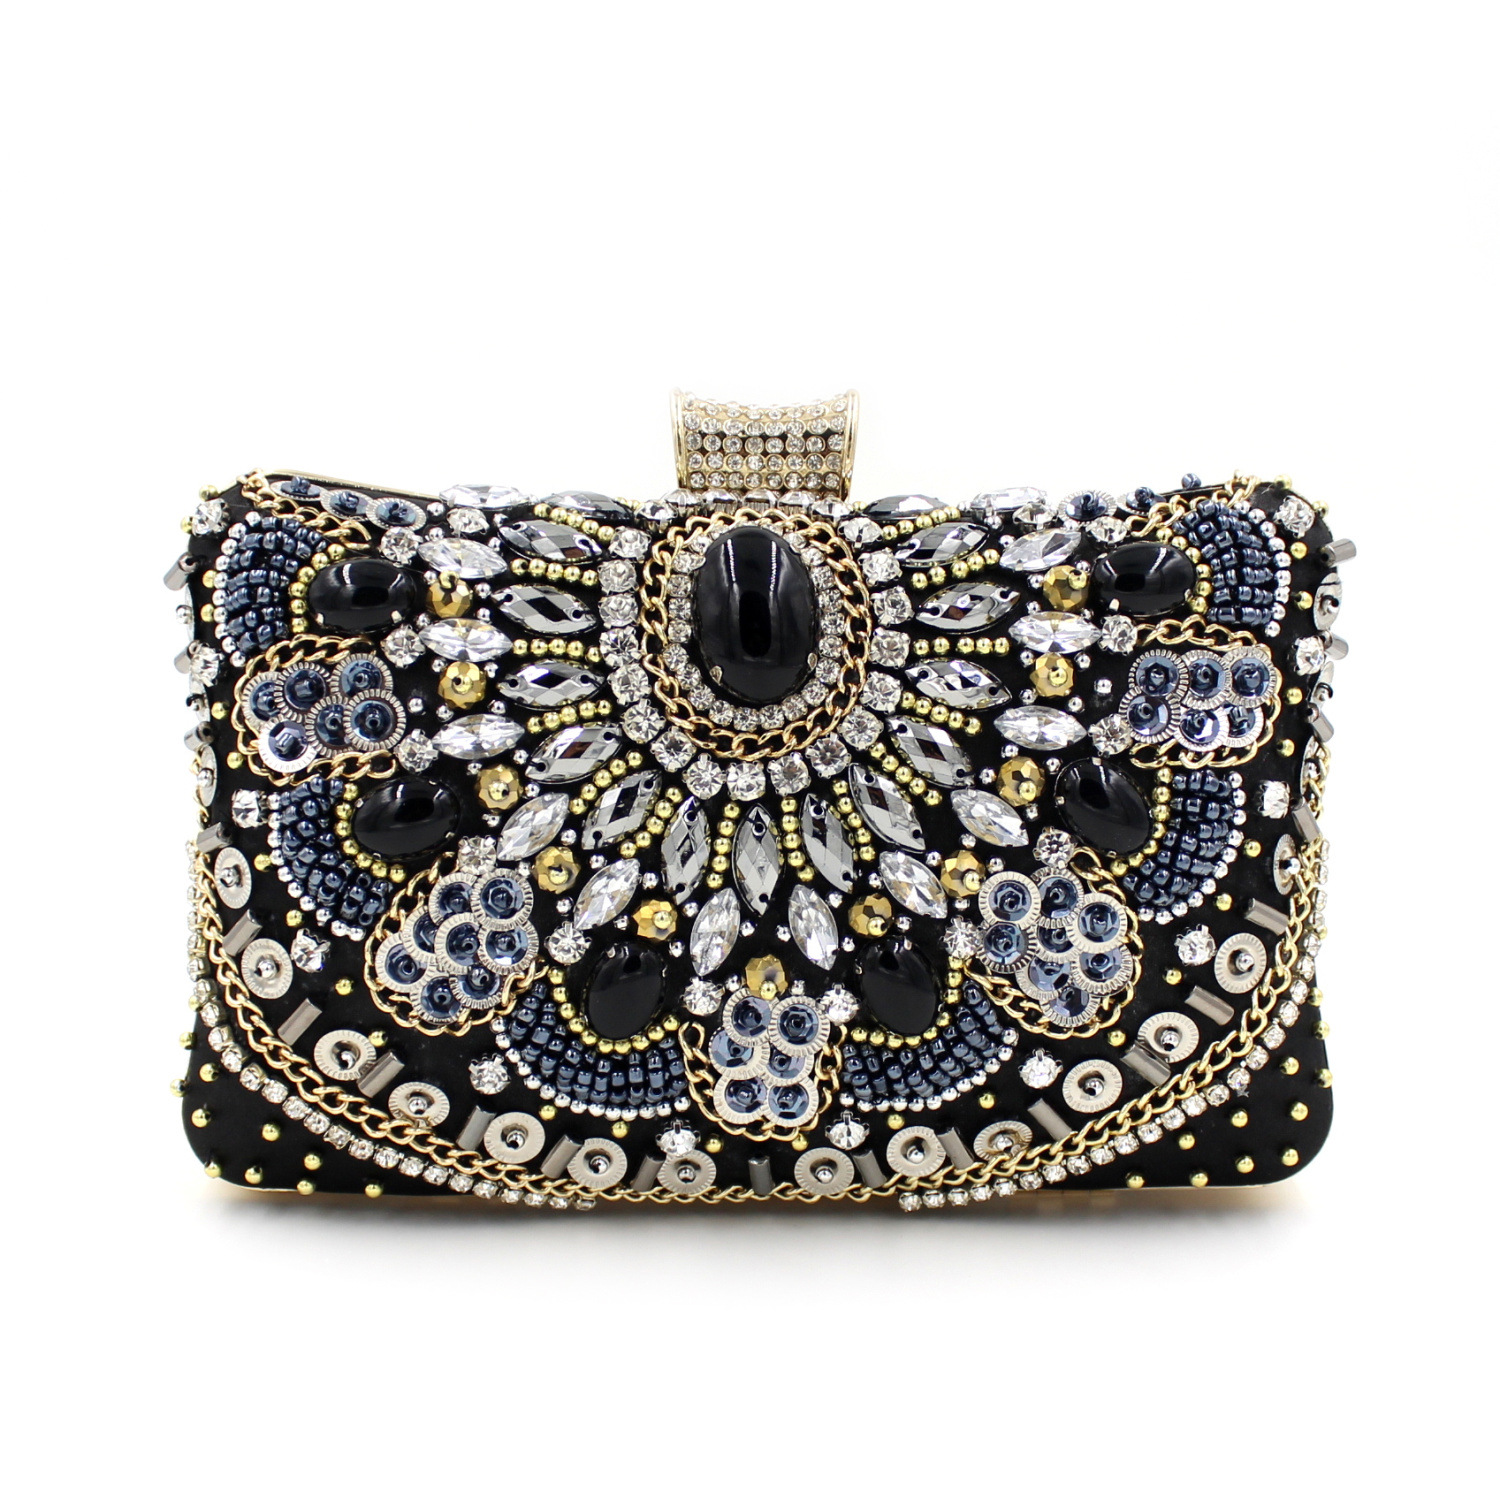 2016 Handmade Crystal Chian Bead Black Evening Clutch Bags Purse Prom Wedding Women Dinner Bag Beg Bolsa Feminina Aj Sac A Main 2016 handmade crystal chian bead black evening clutch bags purse prom wedding women dinner bag beg bolsa feminina aj sac a main